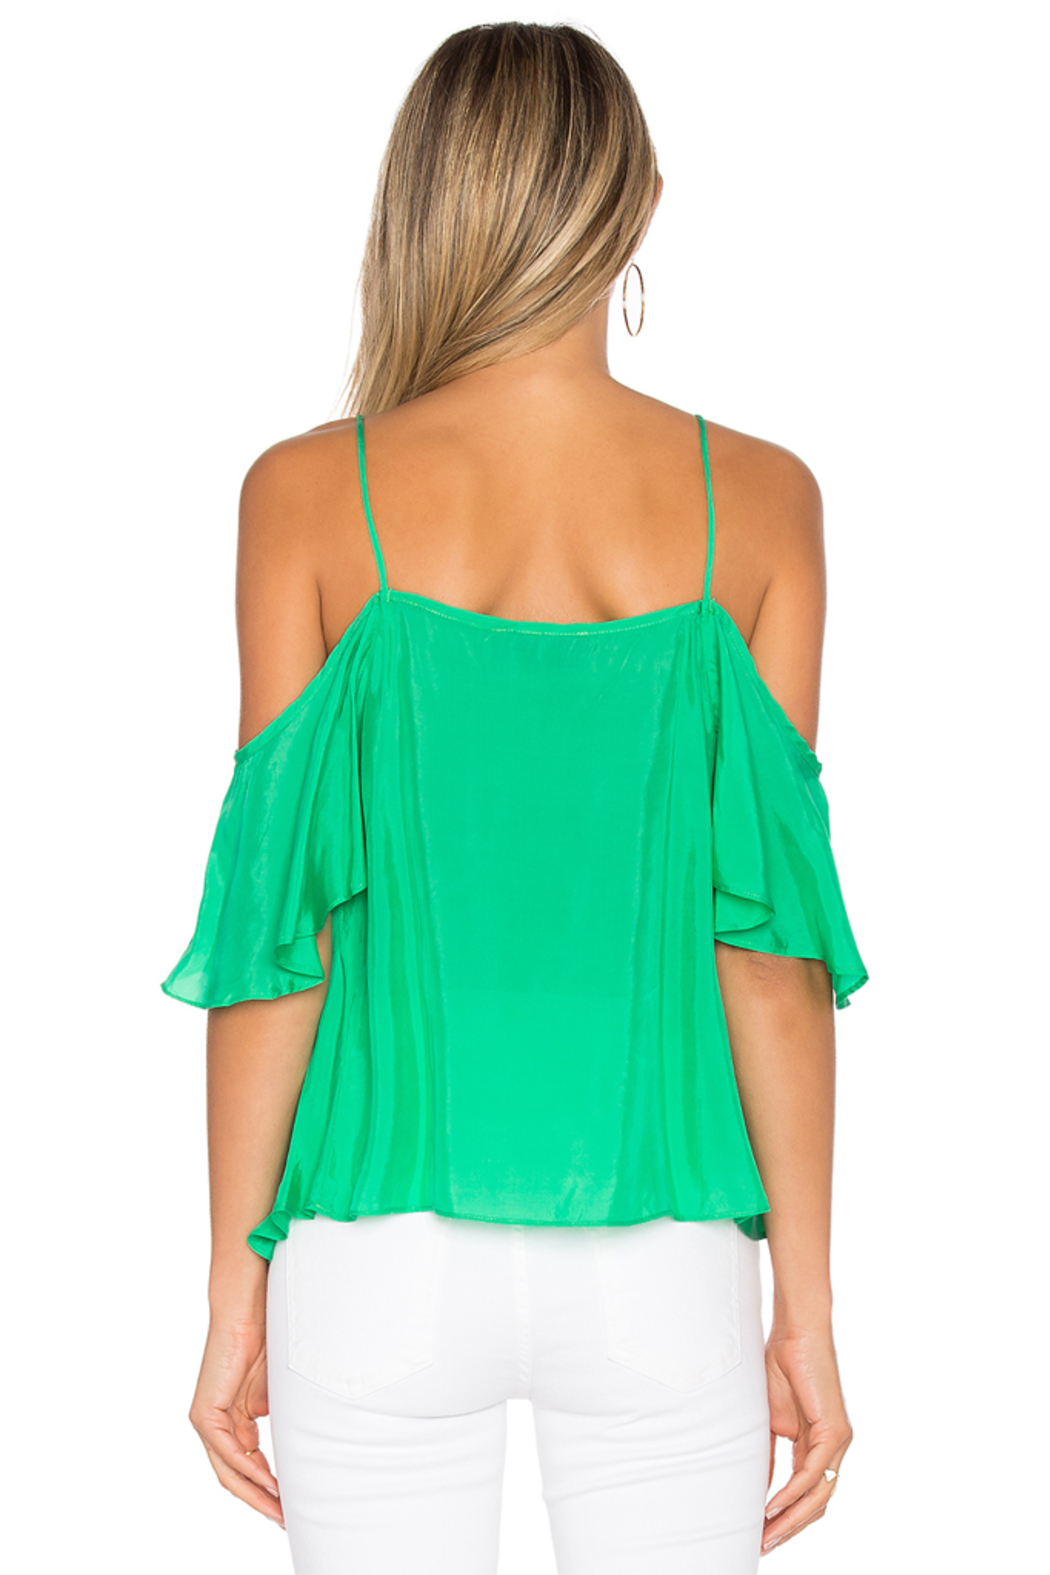 Blaque Label Ruffle Top - Back Cropped Image